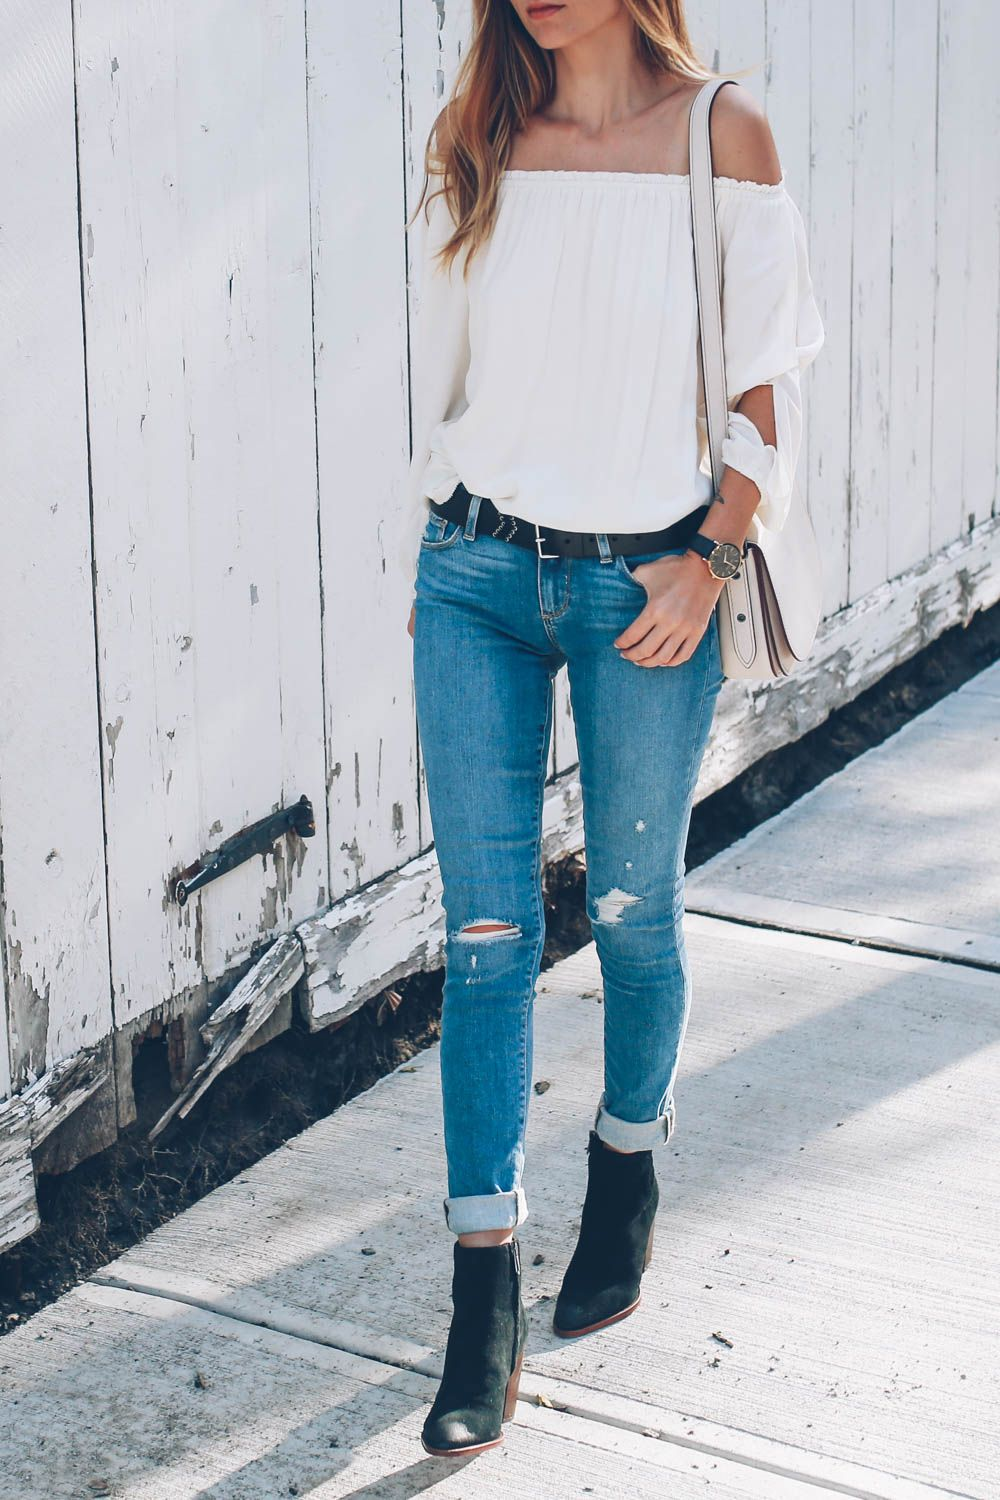 2784579e77d20b Sanctuary off the shoulder blouse with paige skinny jeans and sam edelman  ankle boots